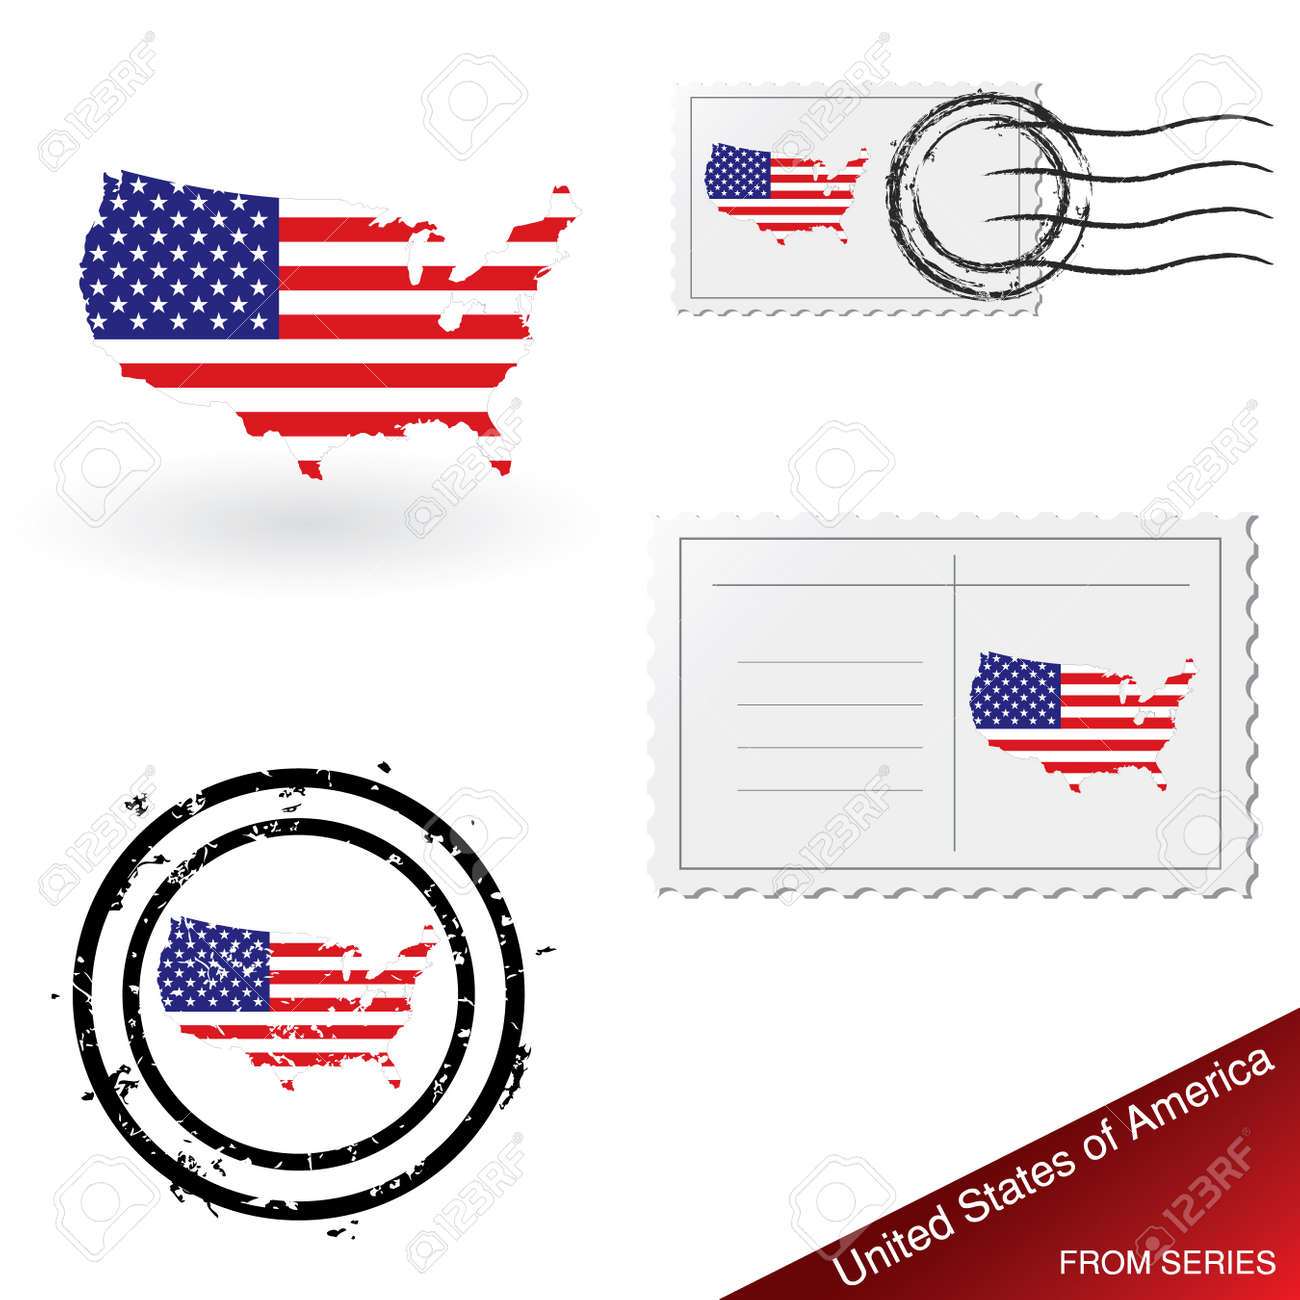 Sunshiny Postcard Stamps Usps Cost Postcard Set Stock Vector Usa Stamps Usa Stamps Postcard Set Royalty Free Postcard Stamps 2016 inspiration Post Card Stamps